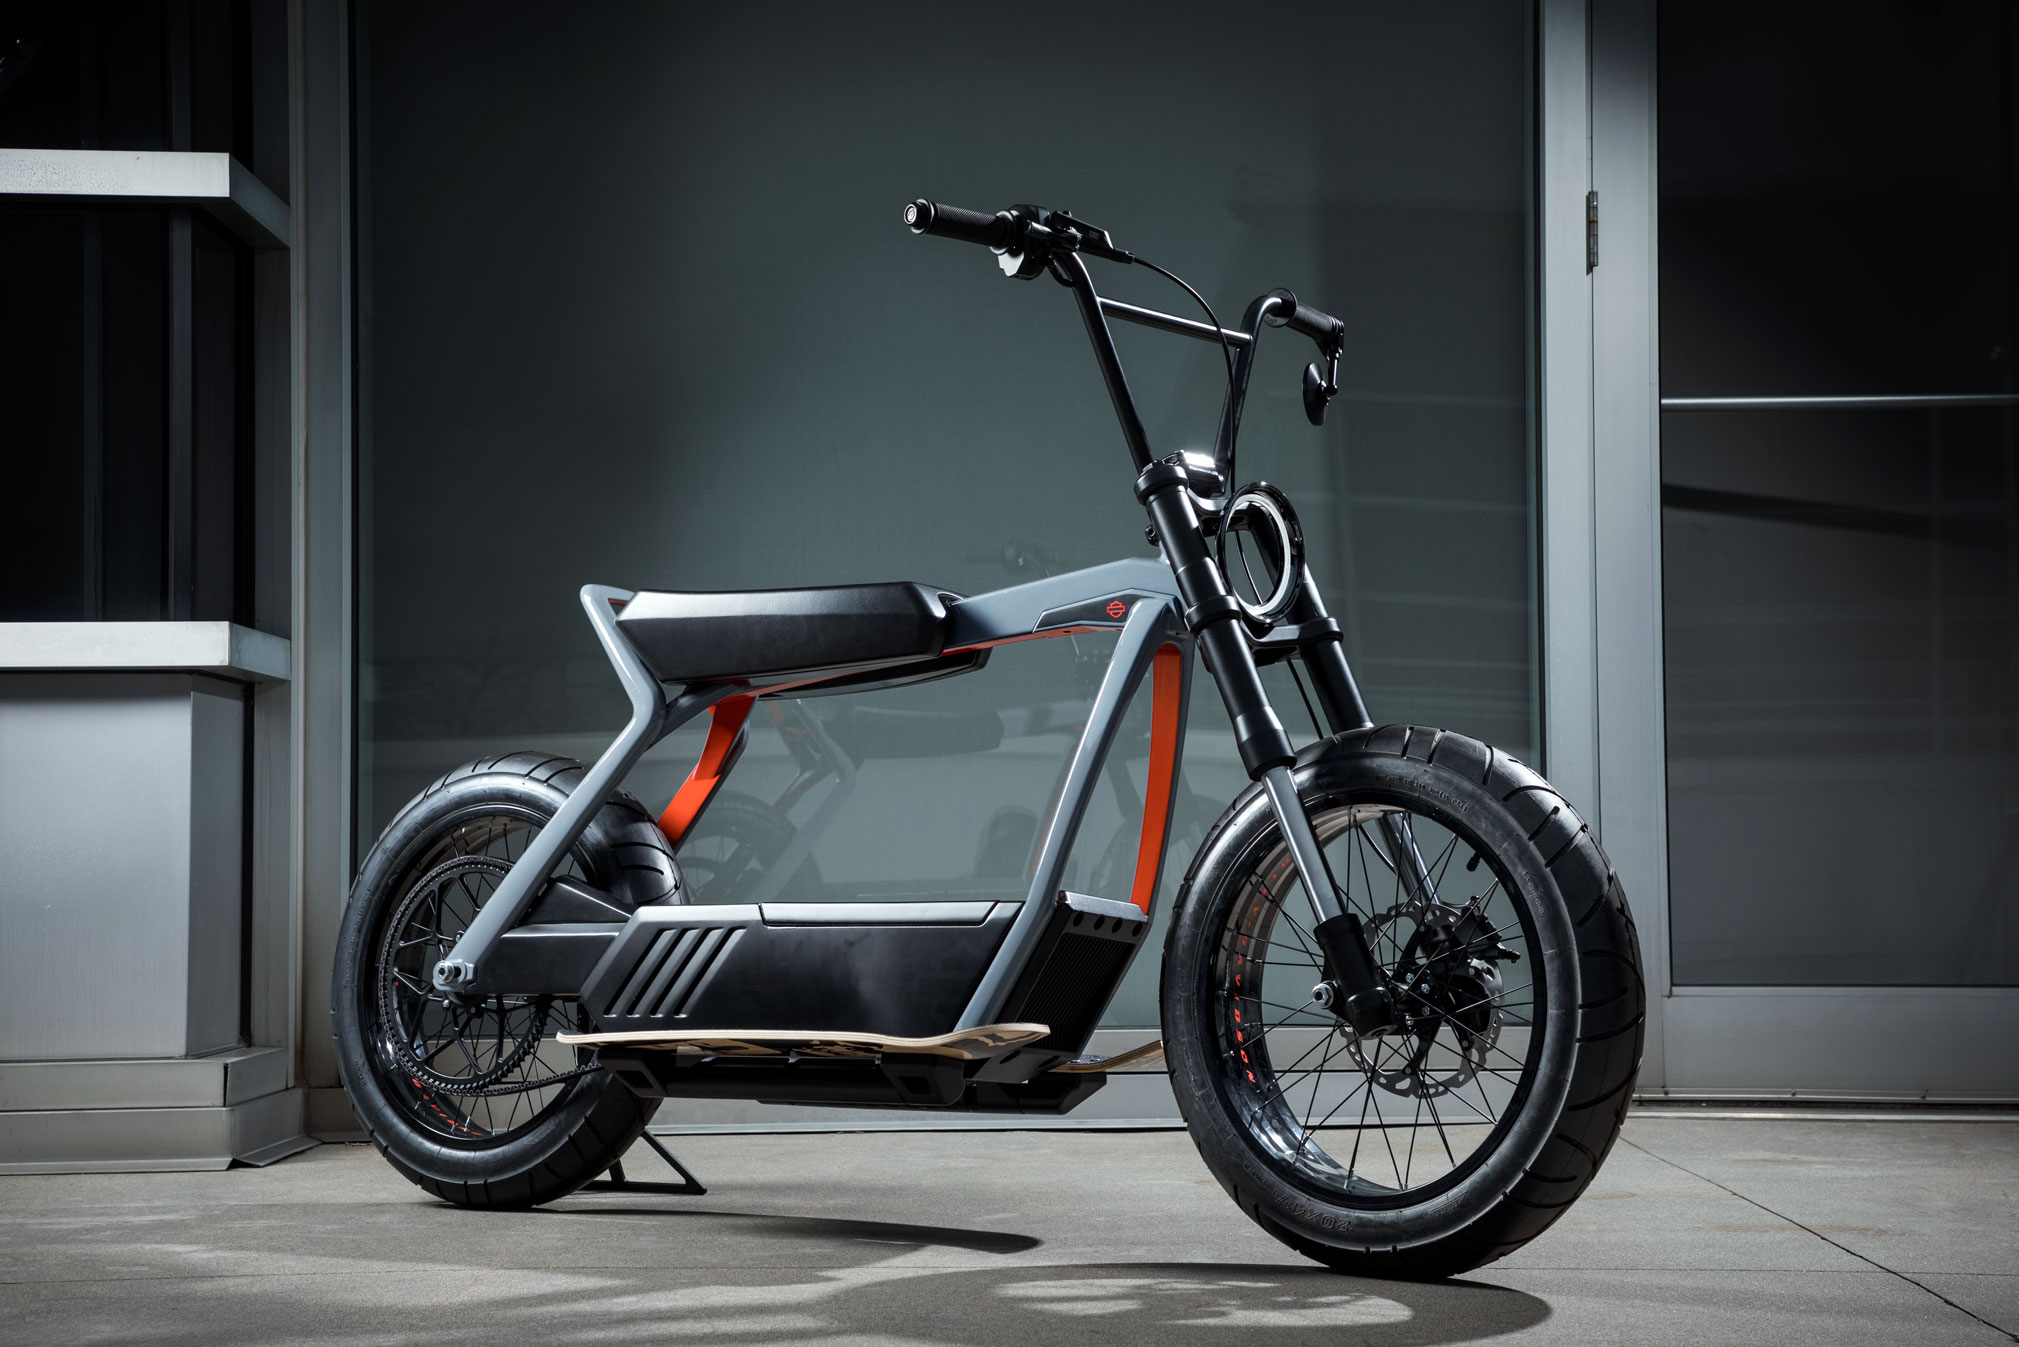 2020 Harley-Davidson Electric Scooter Guide • Total Motorcycle